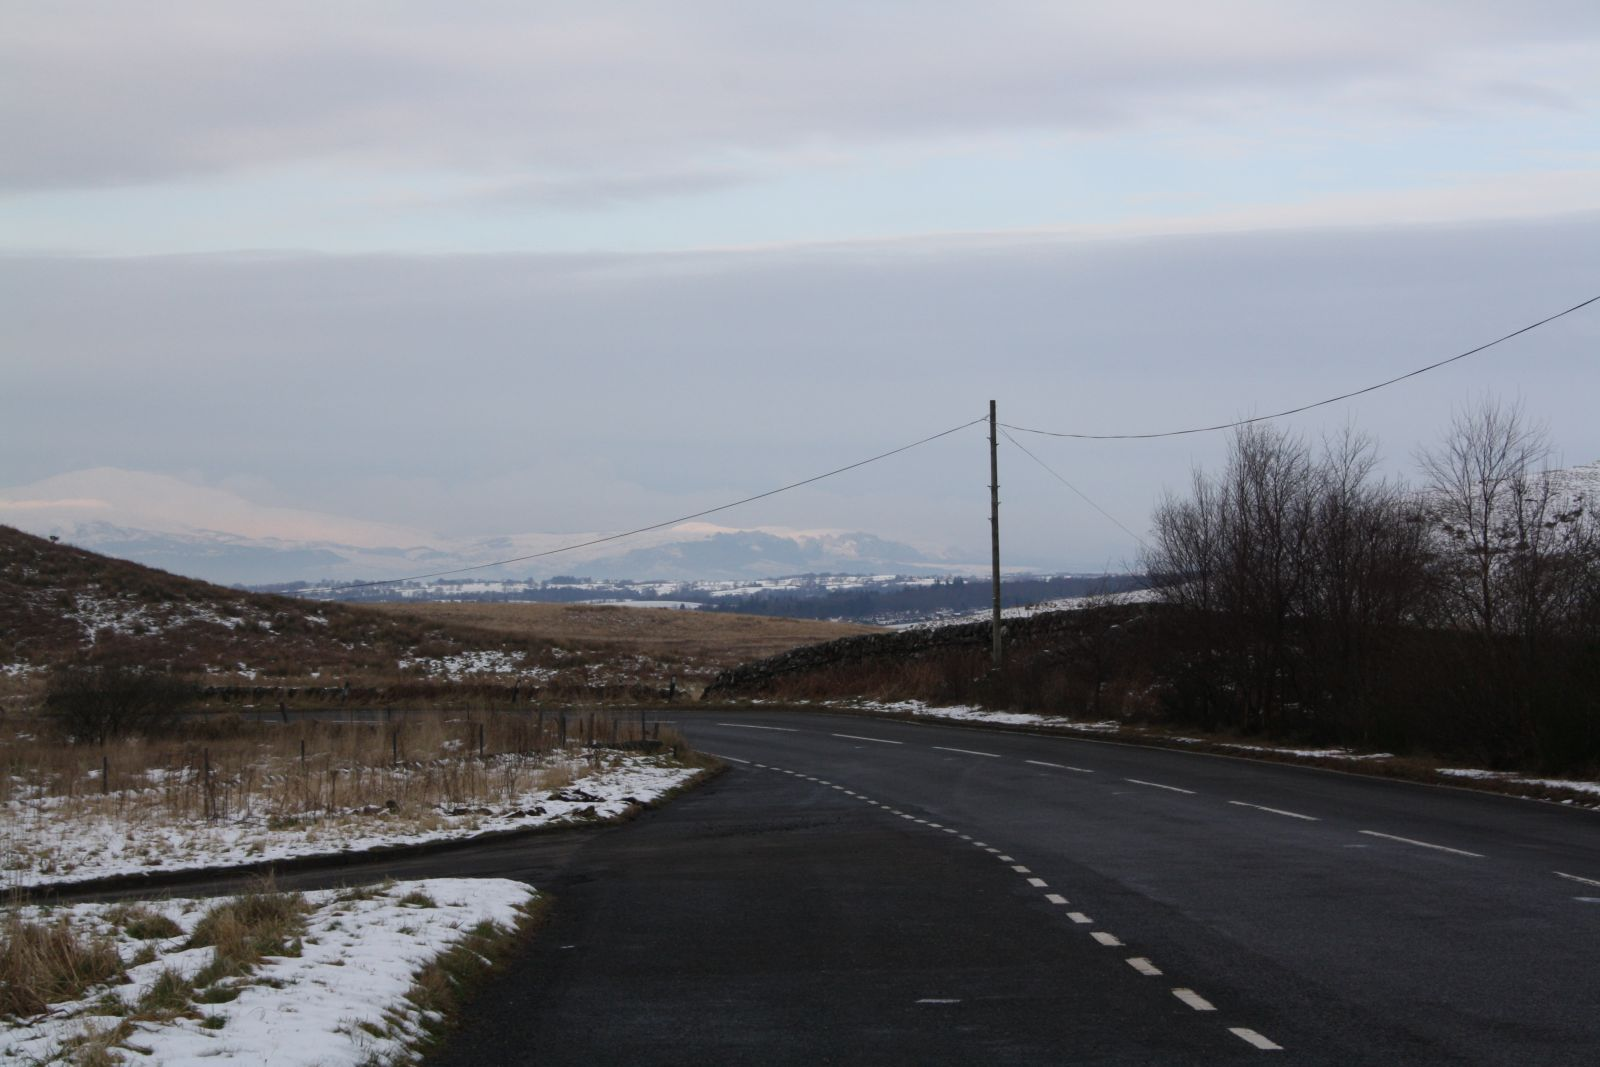 Looking north east towards the Highland Boundary Fault Line, The Trossachs and Ben Ledi